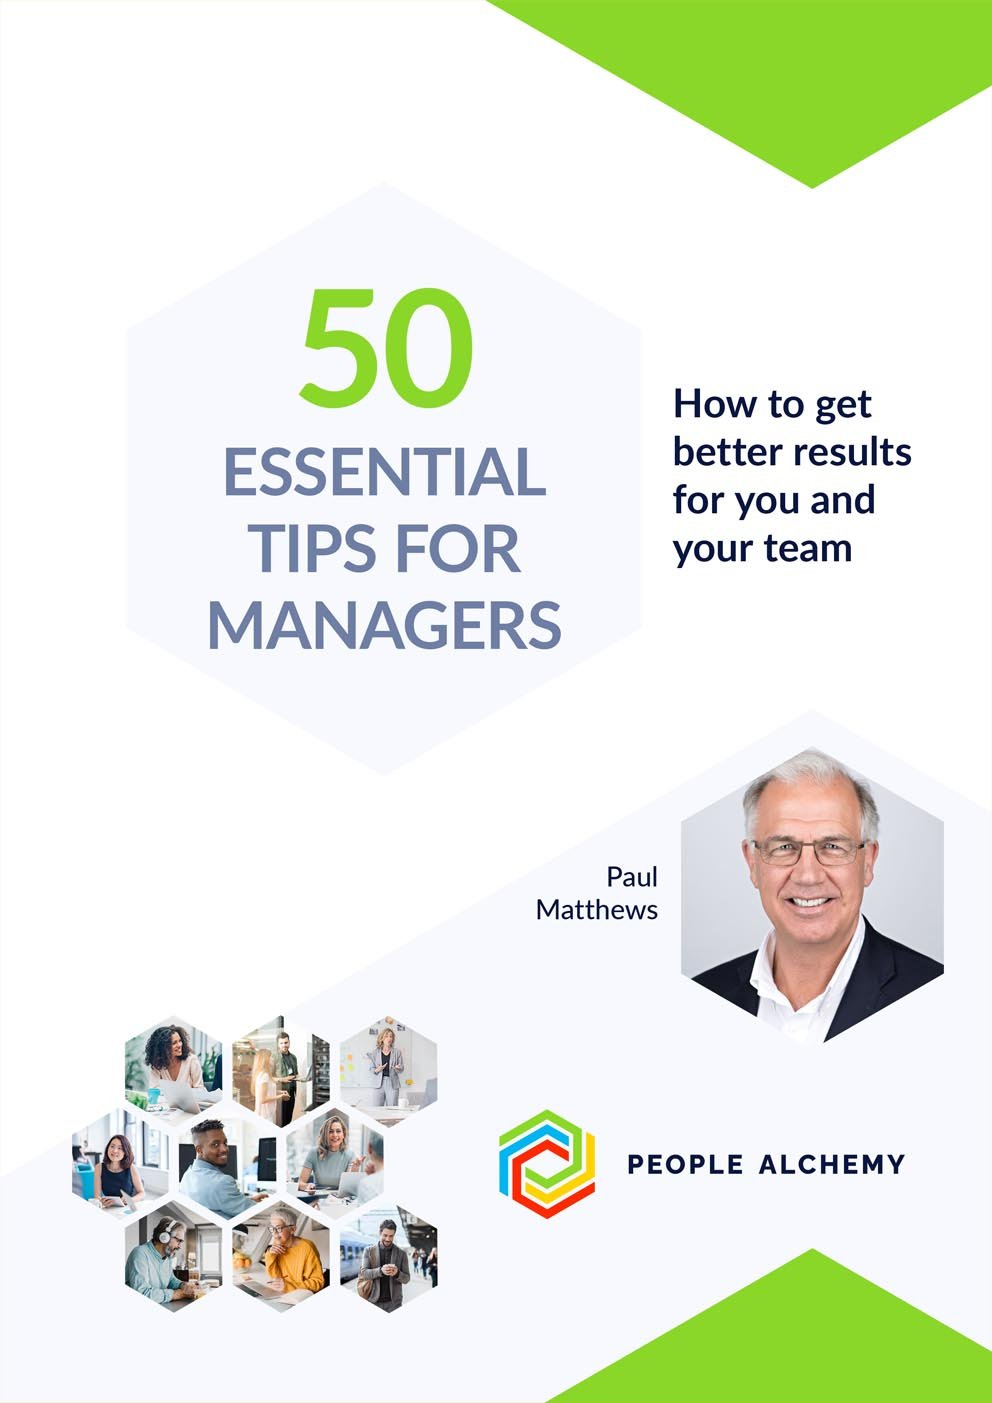 https://peoplealchemy.com/wp-content/uploads/2021/09/PA-Tips-Booklet-2021-covers-HD-3.jpg